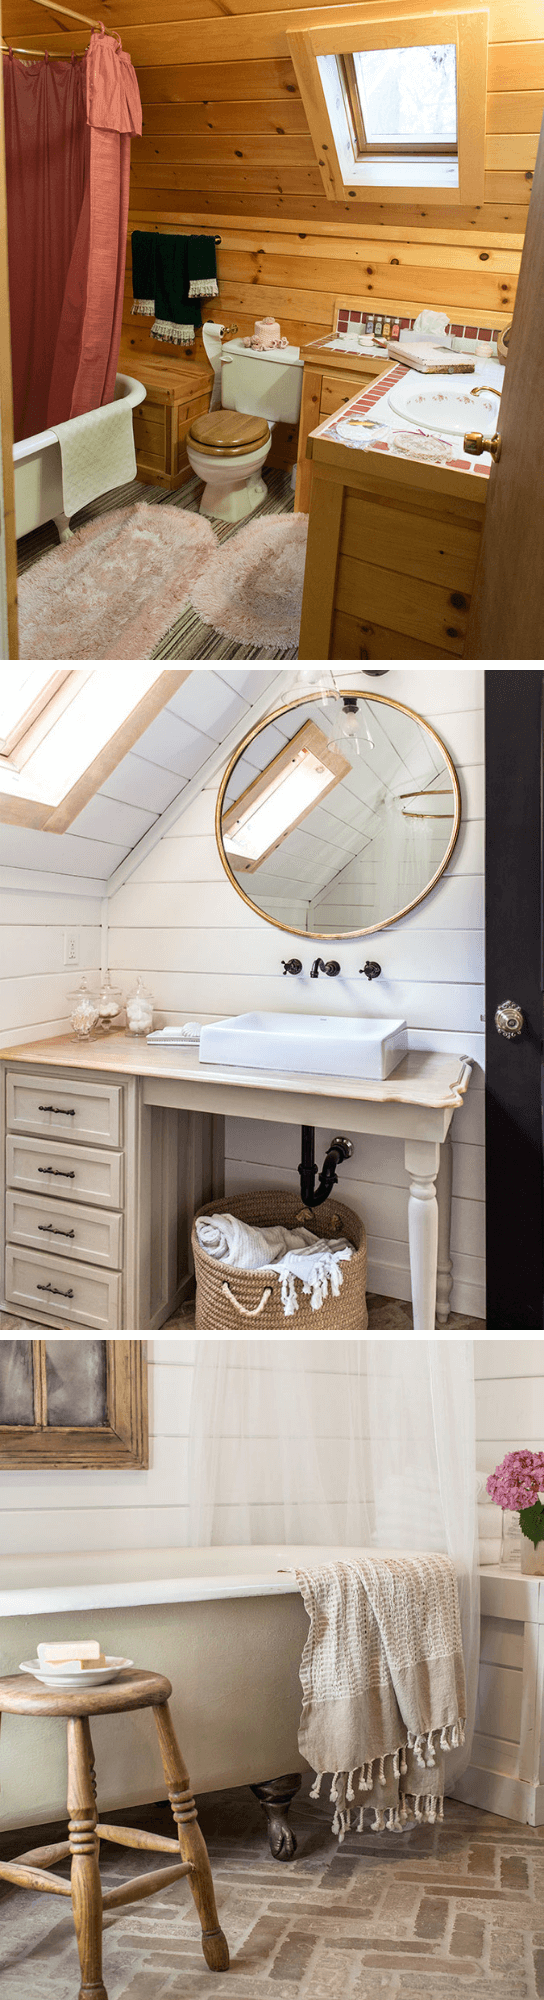 Charming Cottage Style Bathroom Ideas Upstairs Bathroom Before and after with herringbone brick floors